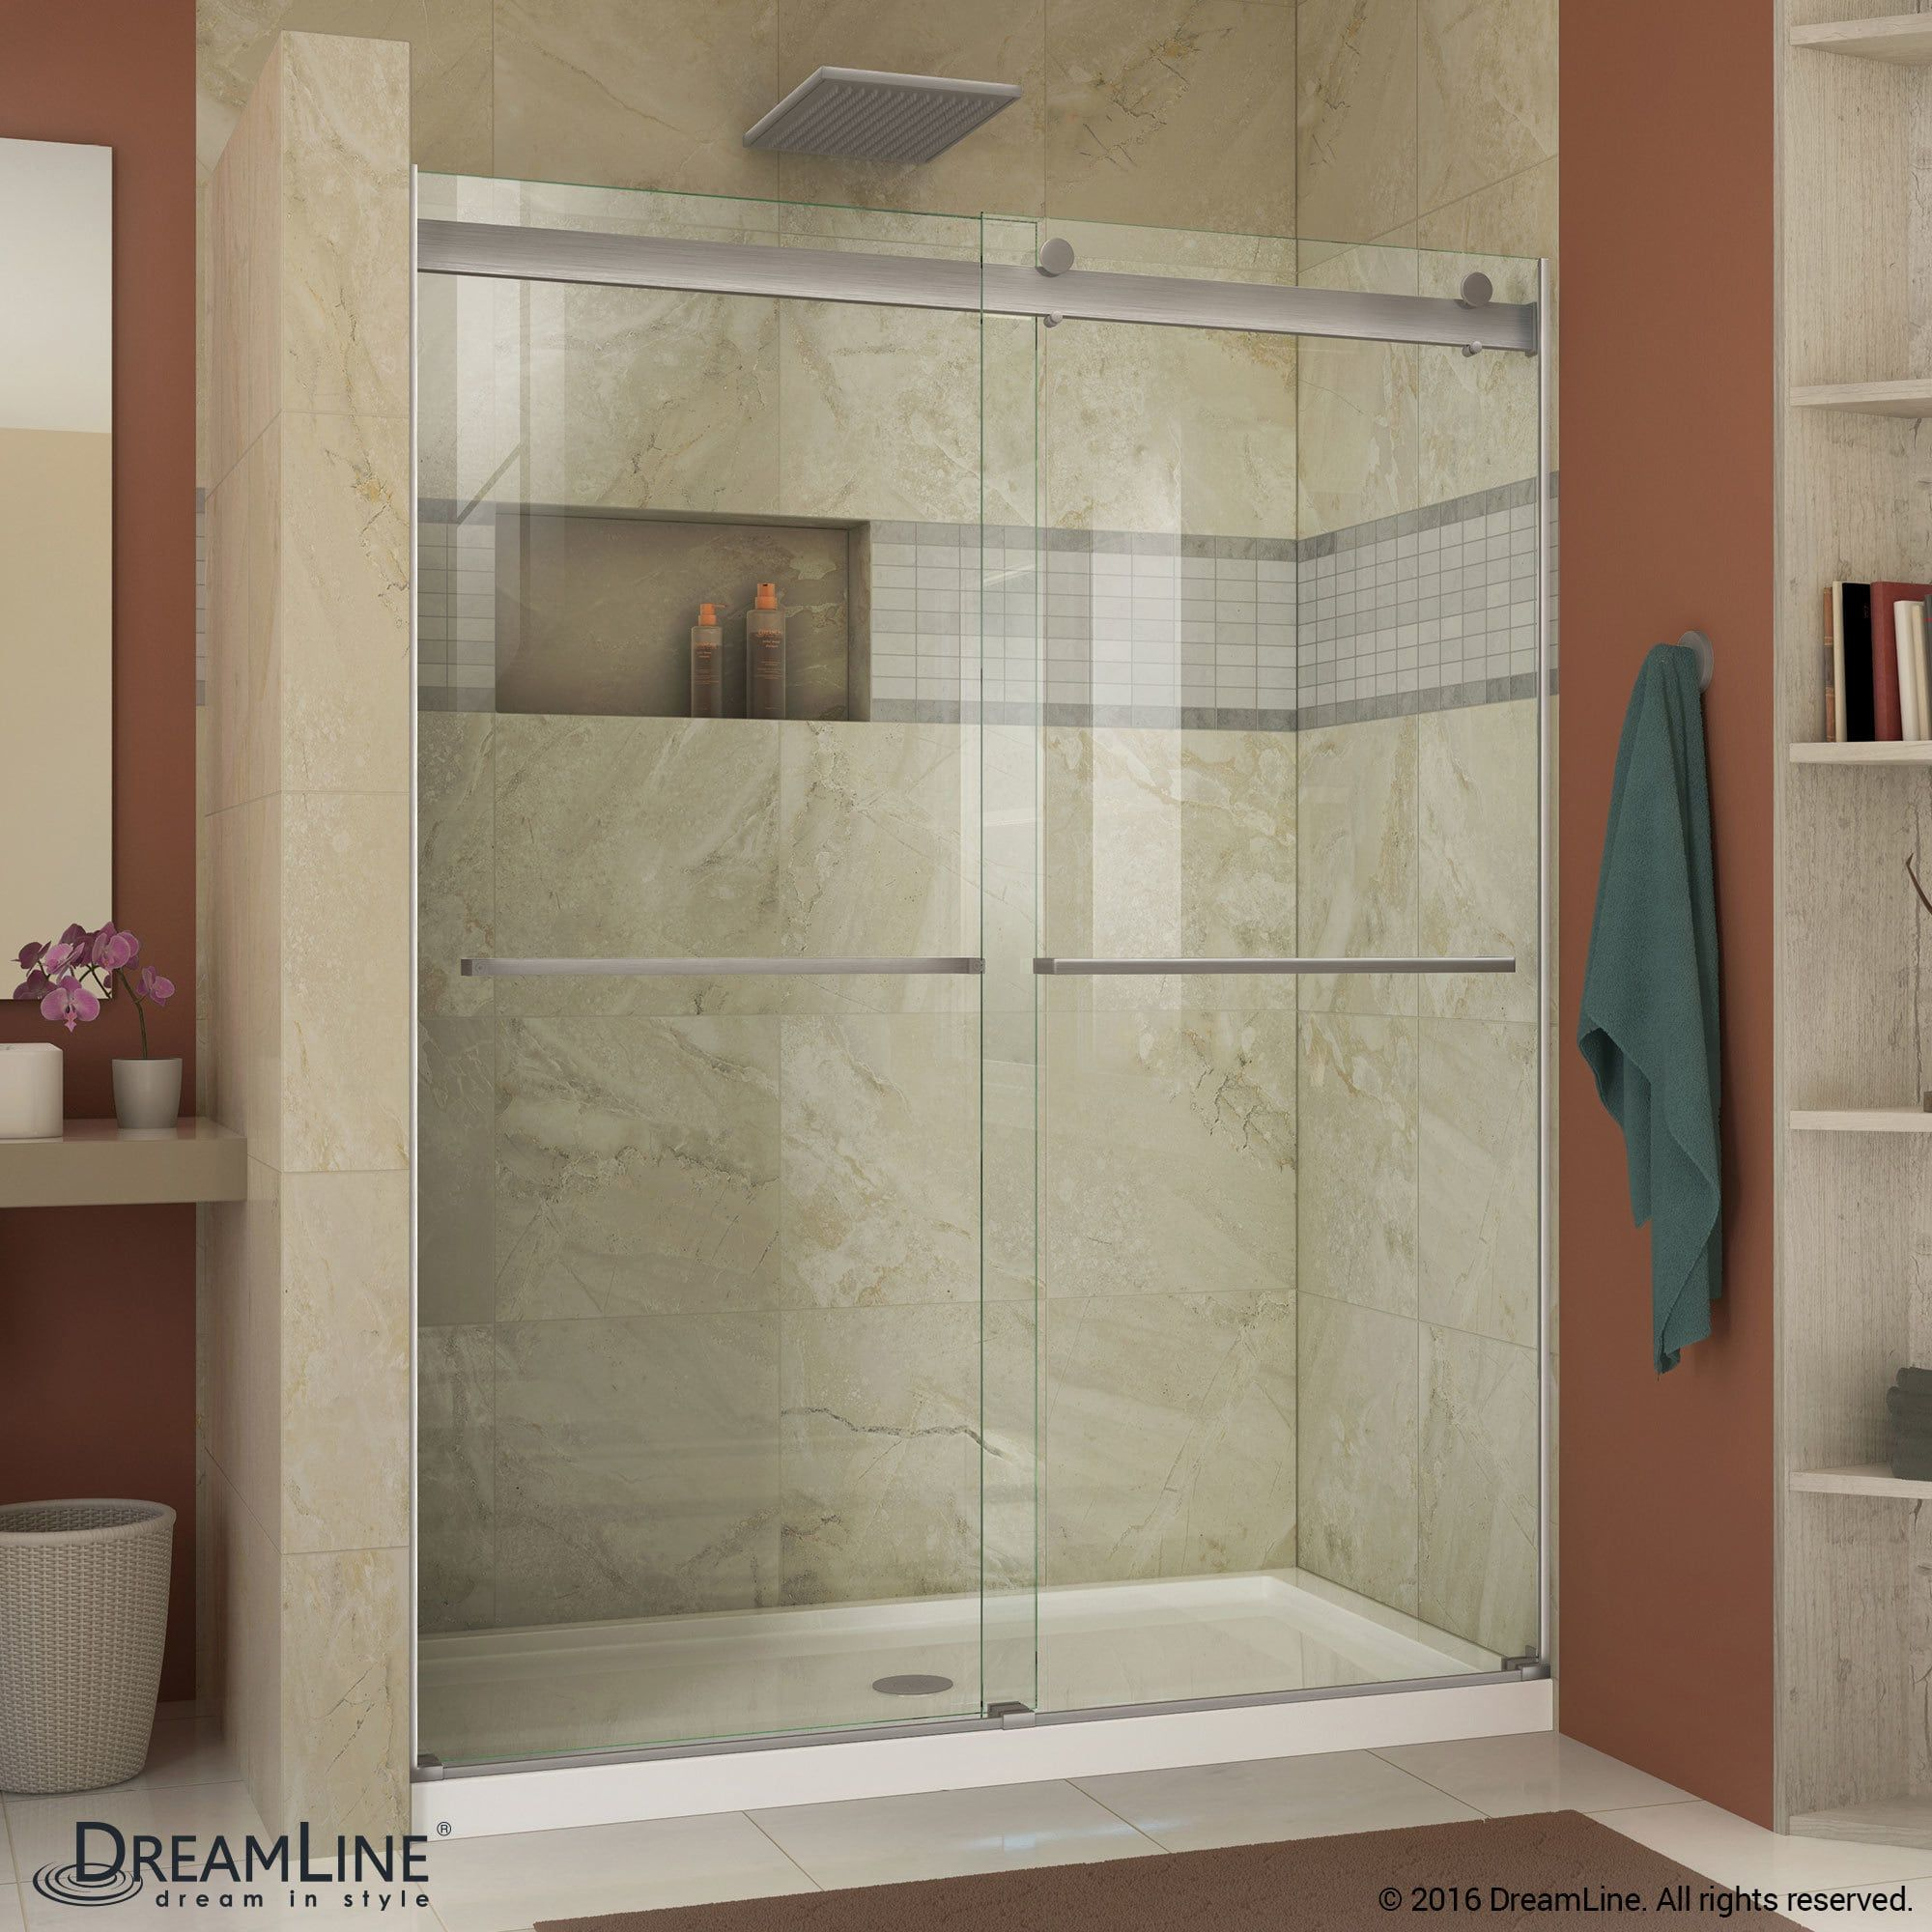 Dreamline Essence 44 48 In W X 76 In H Frameless Bypass Shower